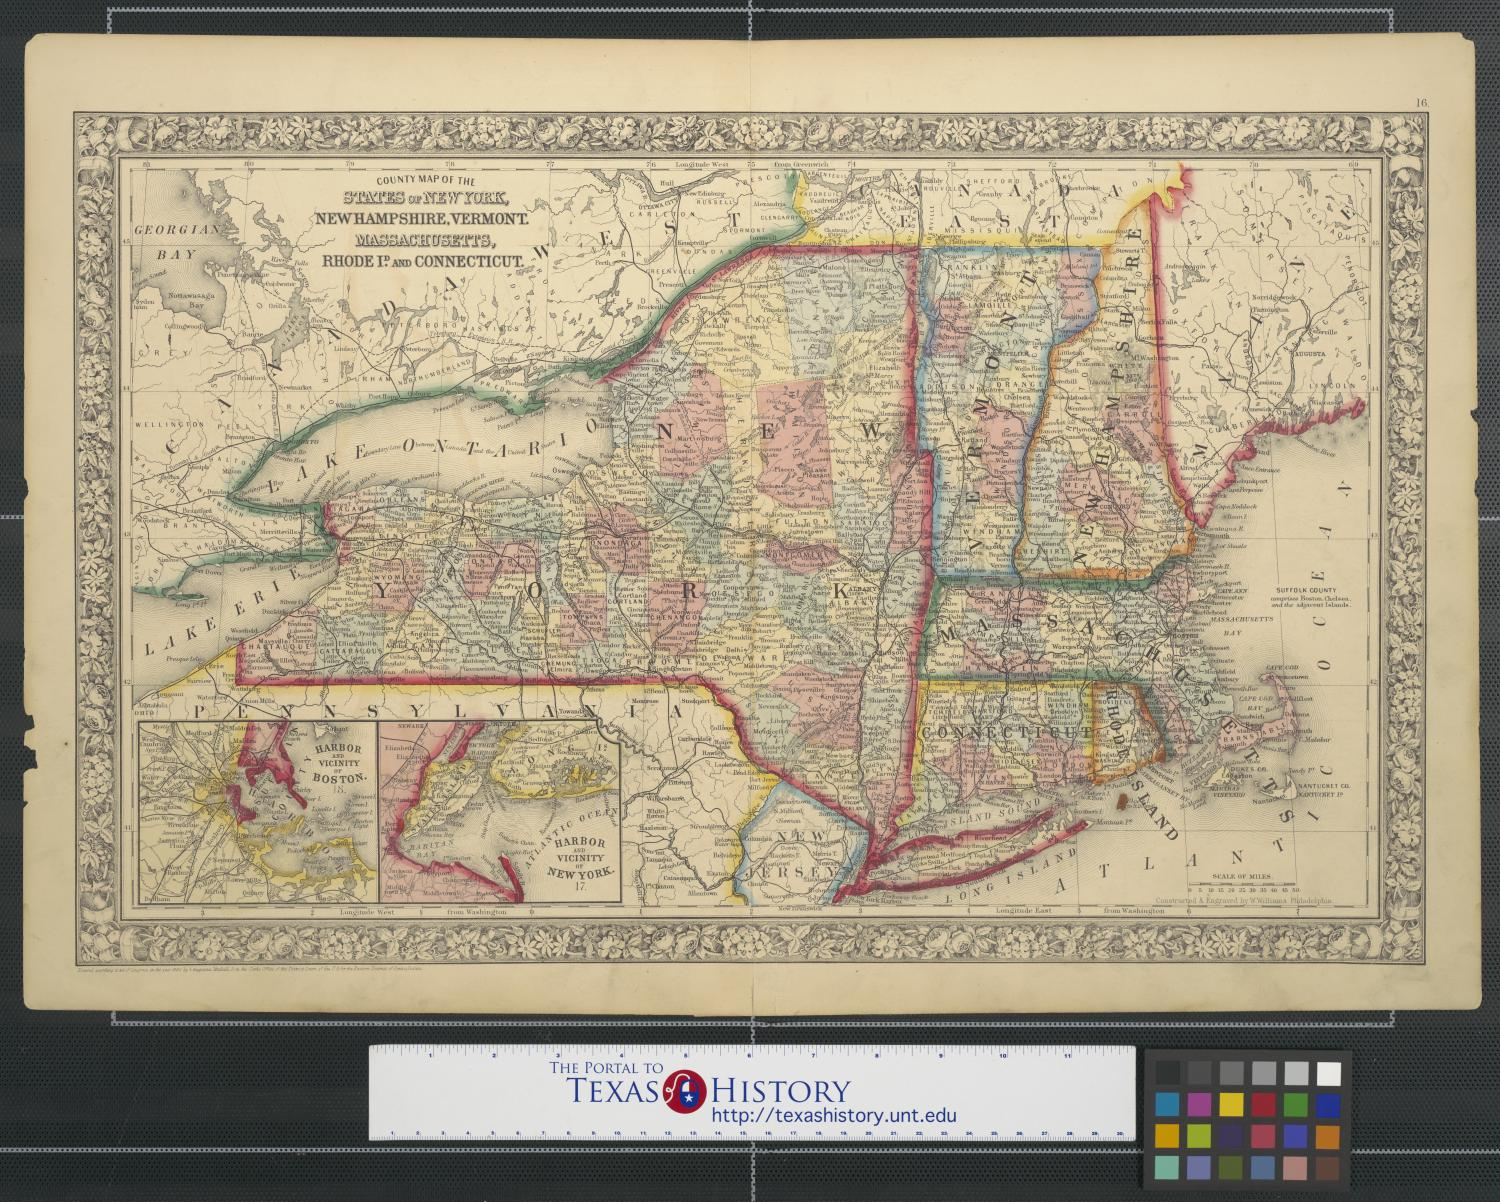 County Map Of The States Of New York New Hampshire Vermont - Map of vermont and new hampshire